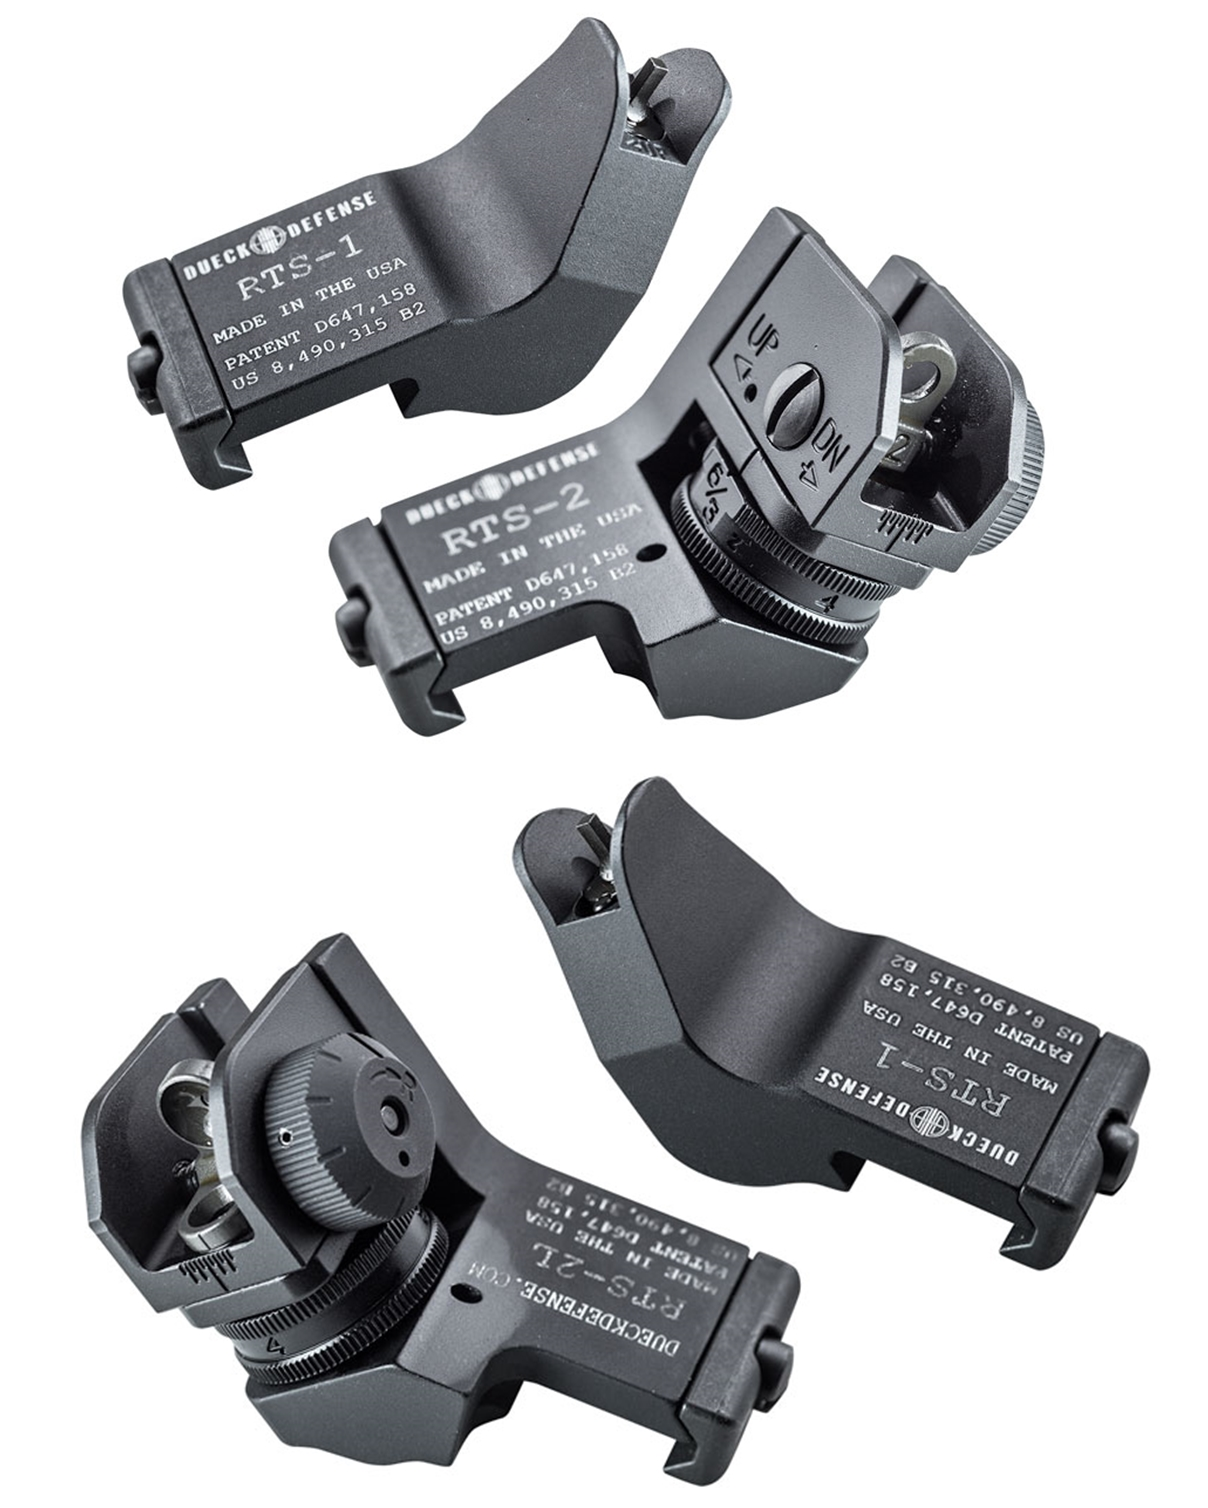 11 RAPID TRANSITION SIGHT FRONT & REAR DUECK DEFENSE TYPE ランジションサイト オフセットサイト カスタム 取付 実物 レプリカ 比較 レビュー